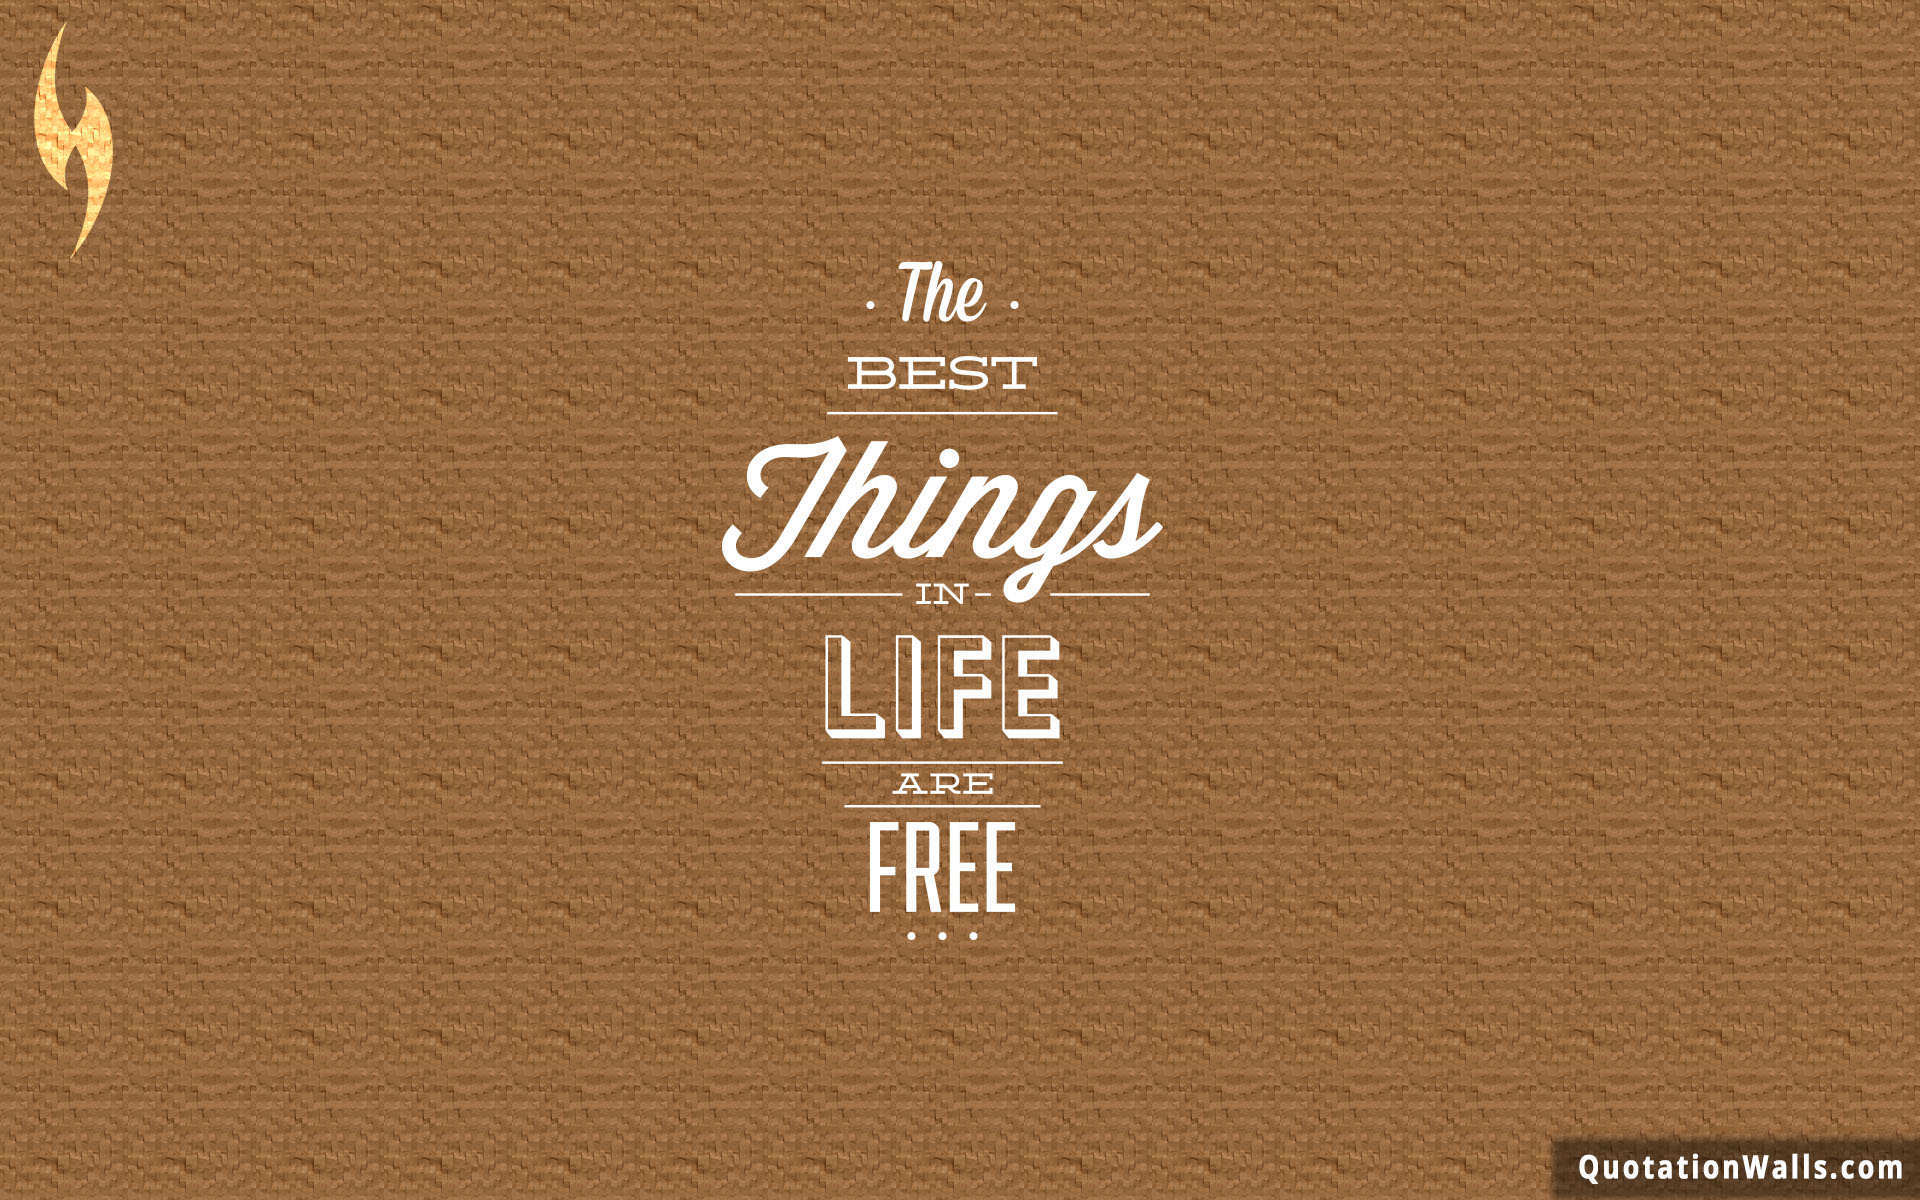 Best Things In Life Are Free Wallpaper For Mobile